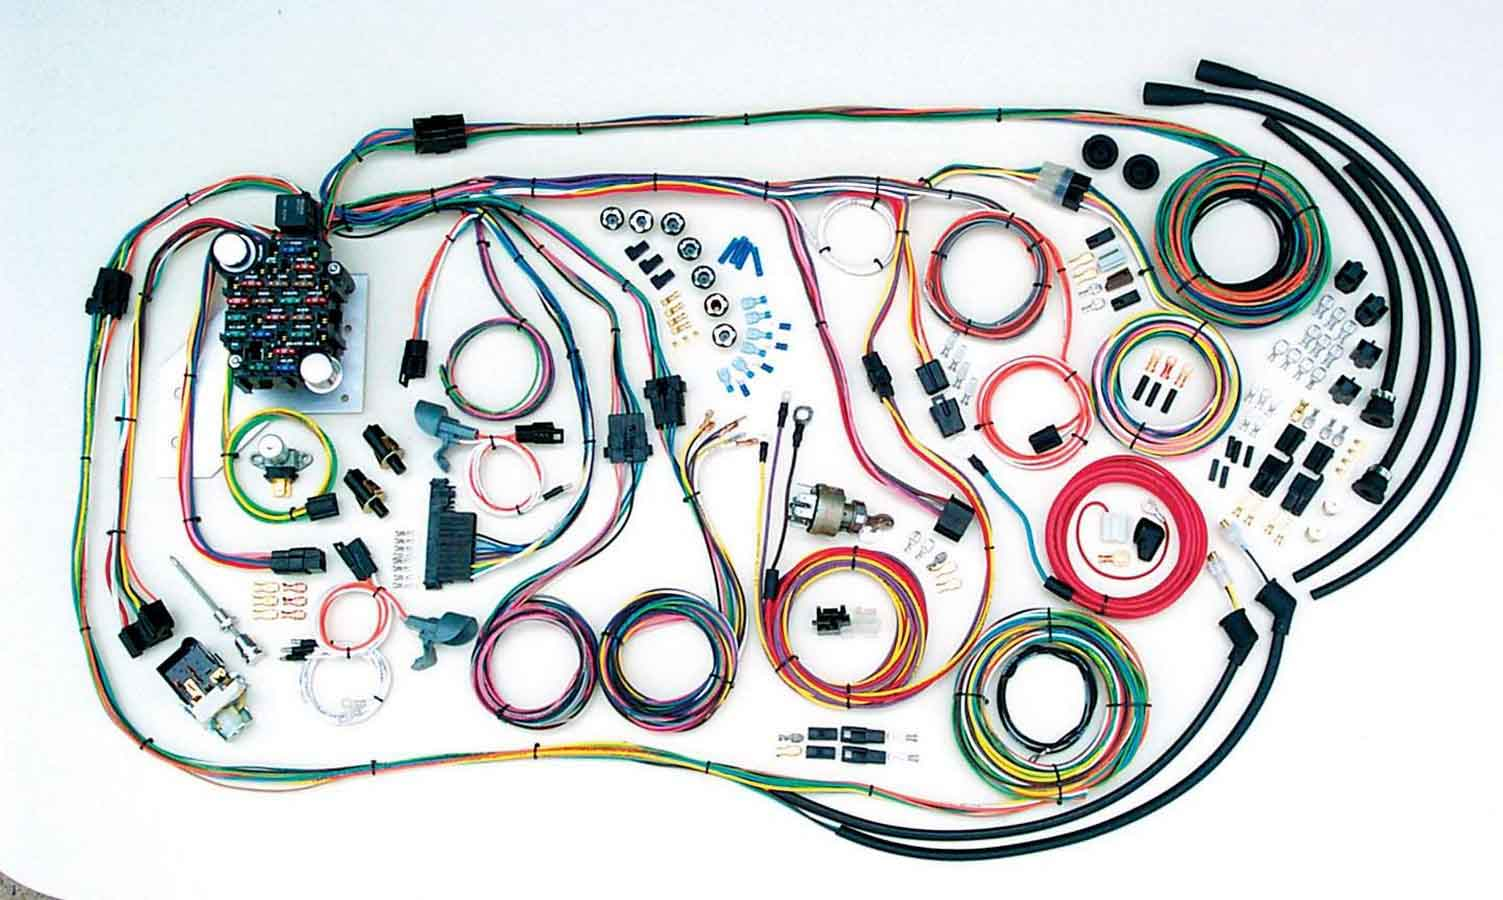 hight resolution of american autowire wiring system chevy truck 1955 59 kit p n 500481 ebay